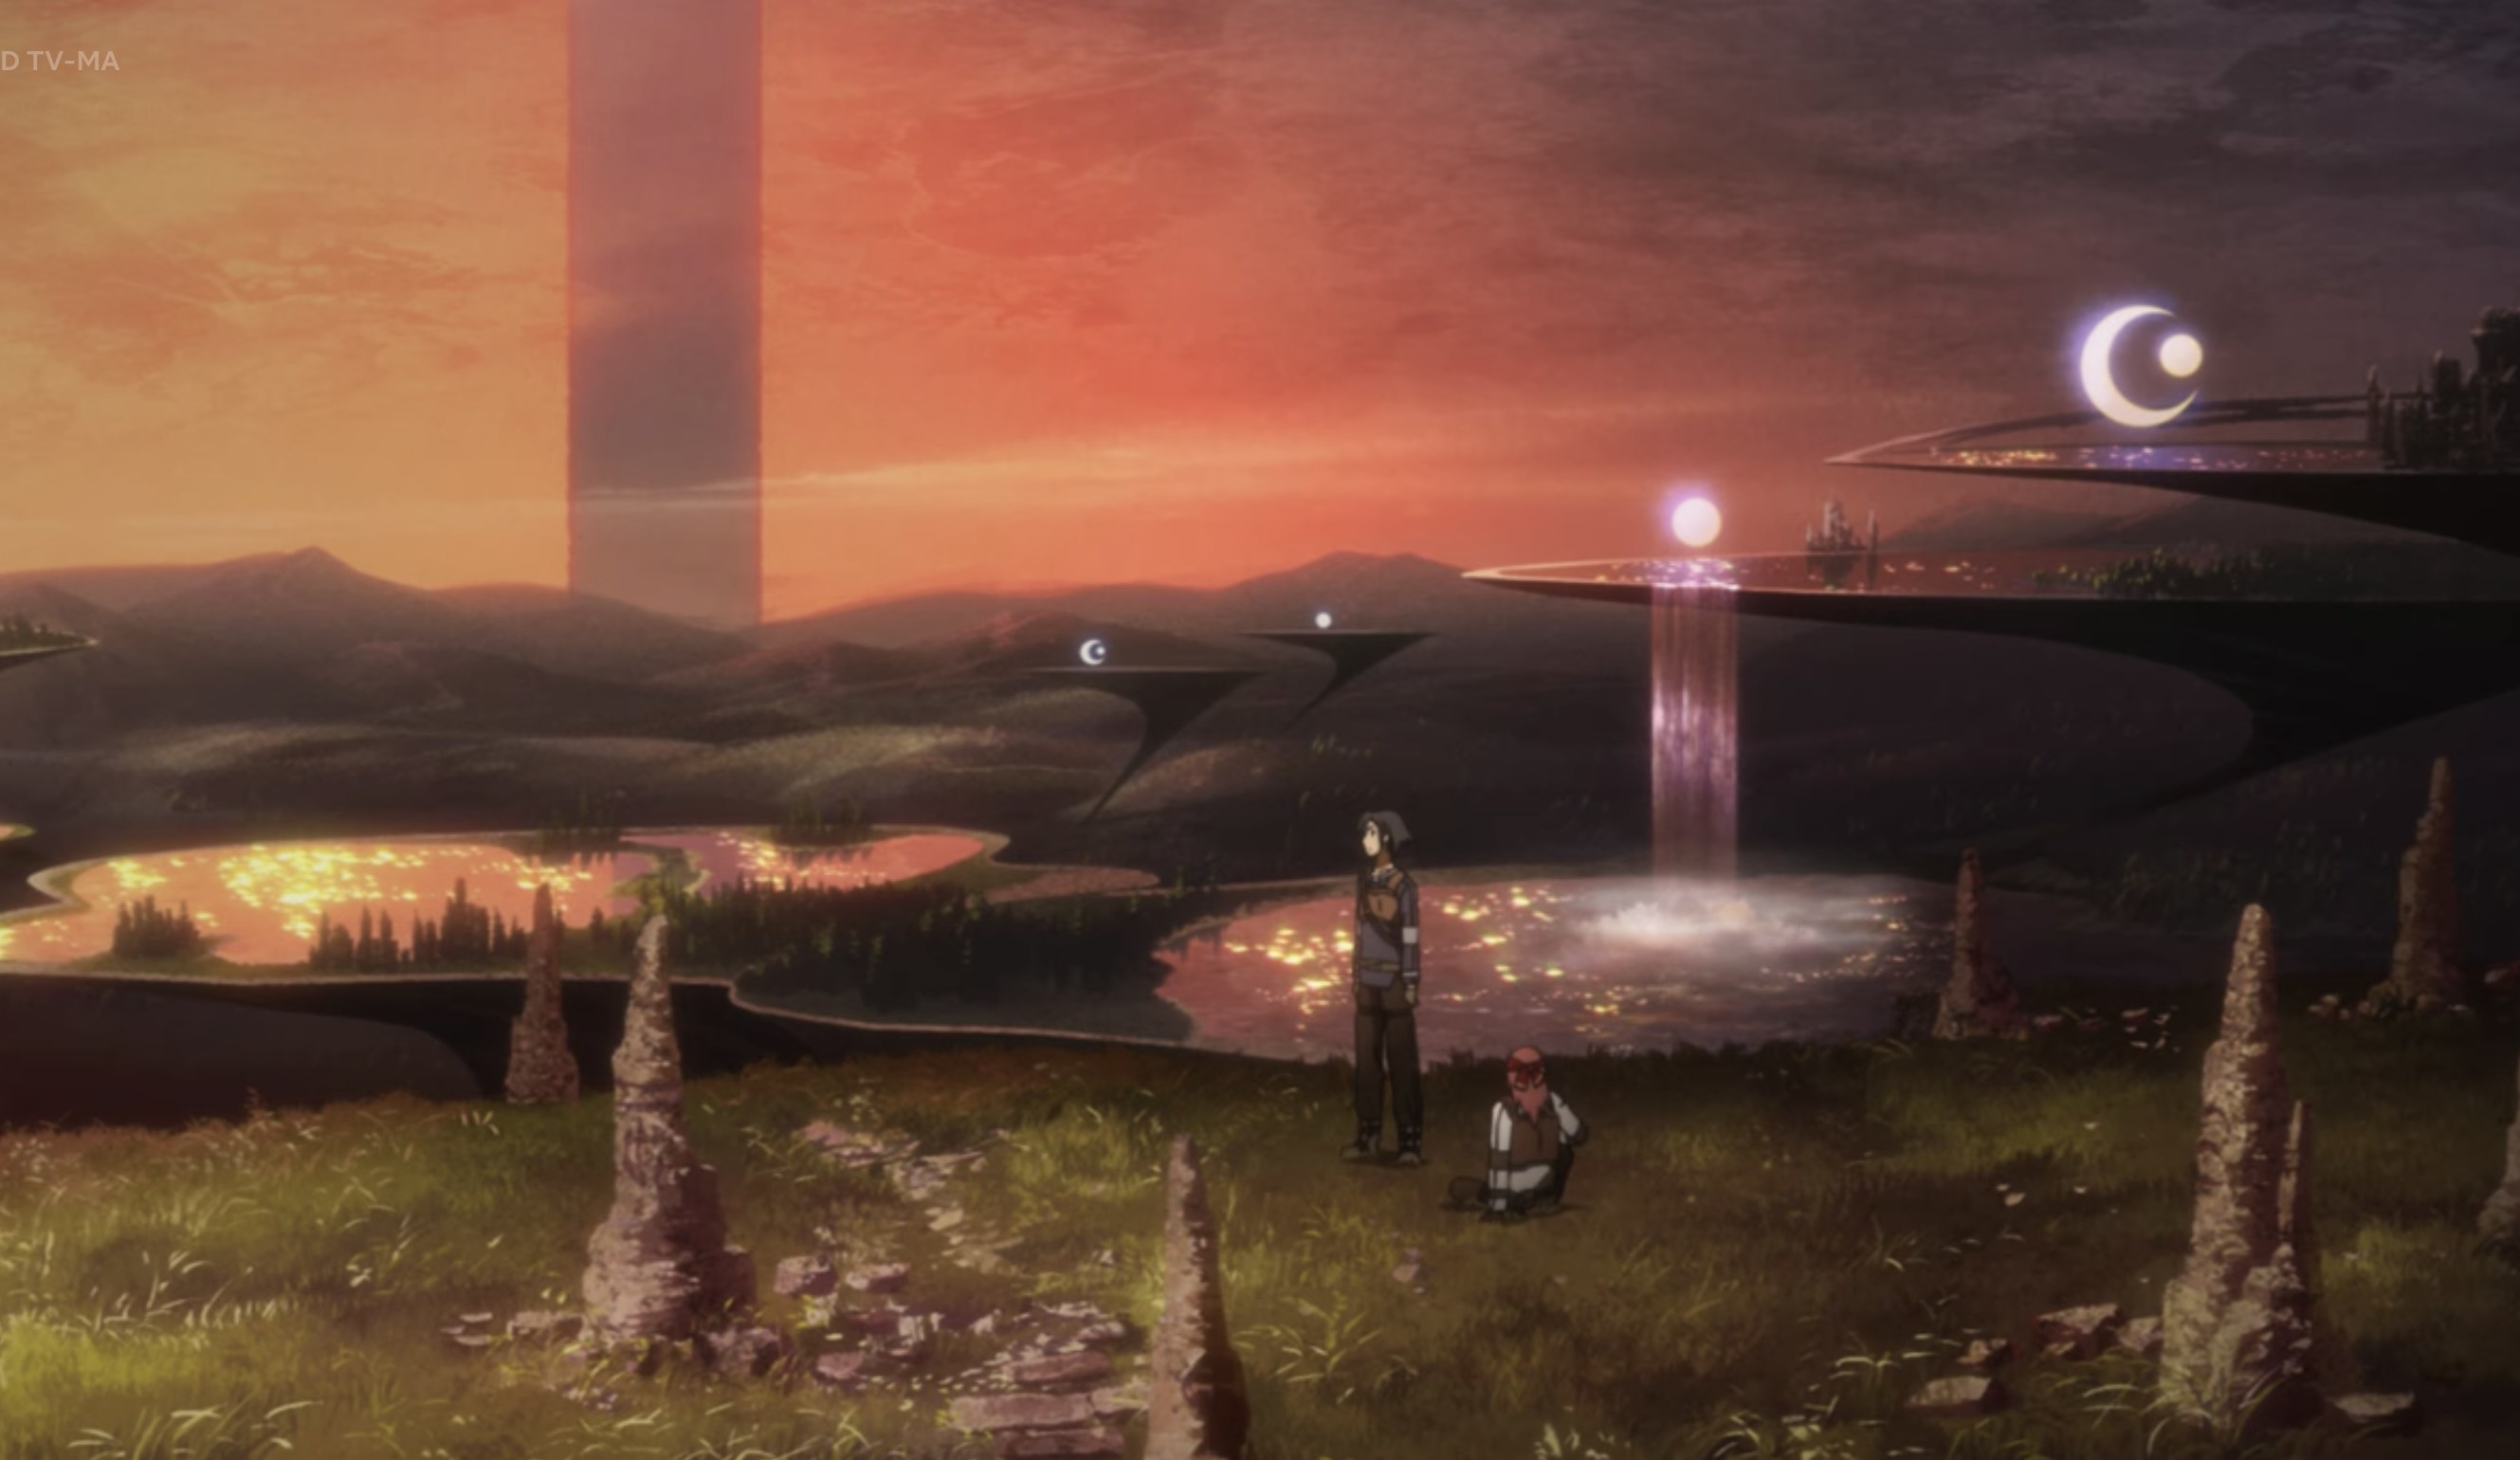 A dystopian landscape with two people